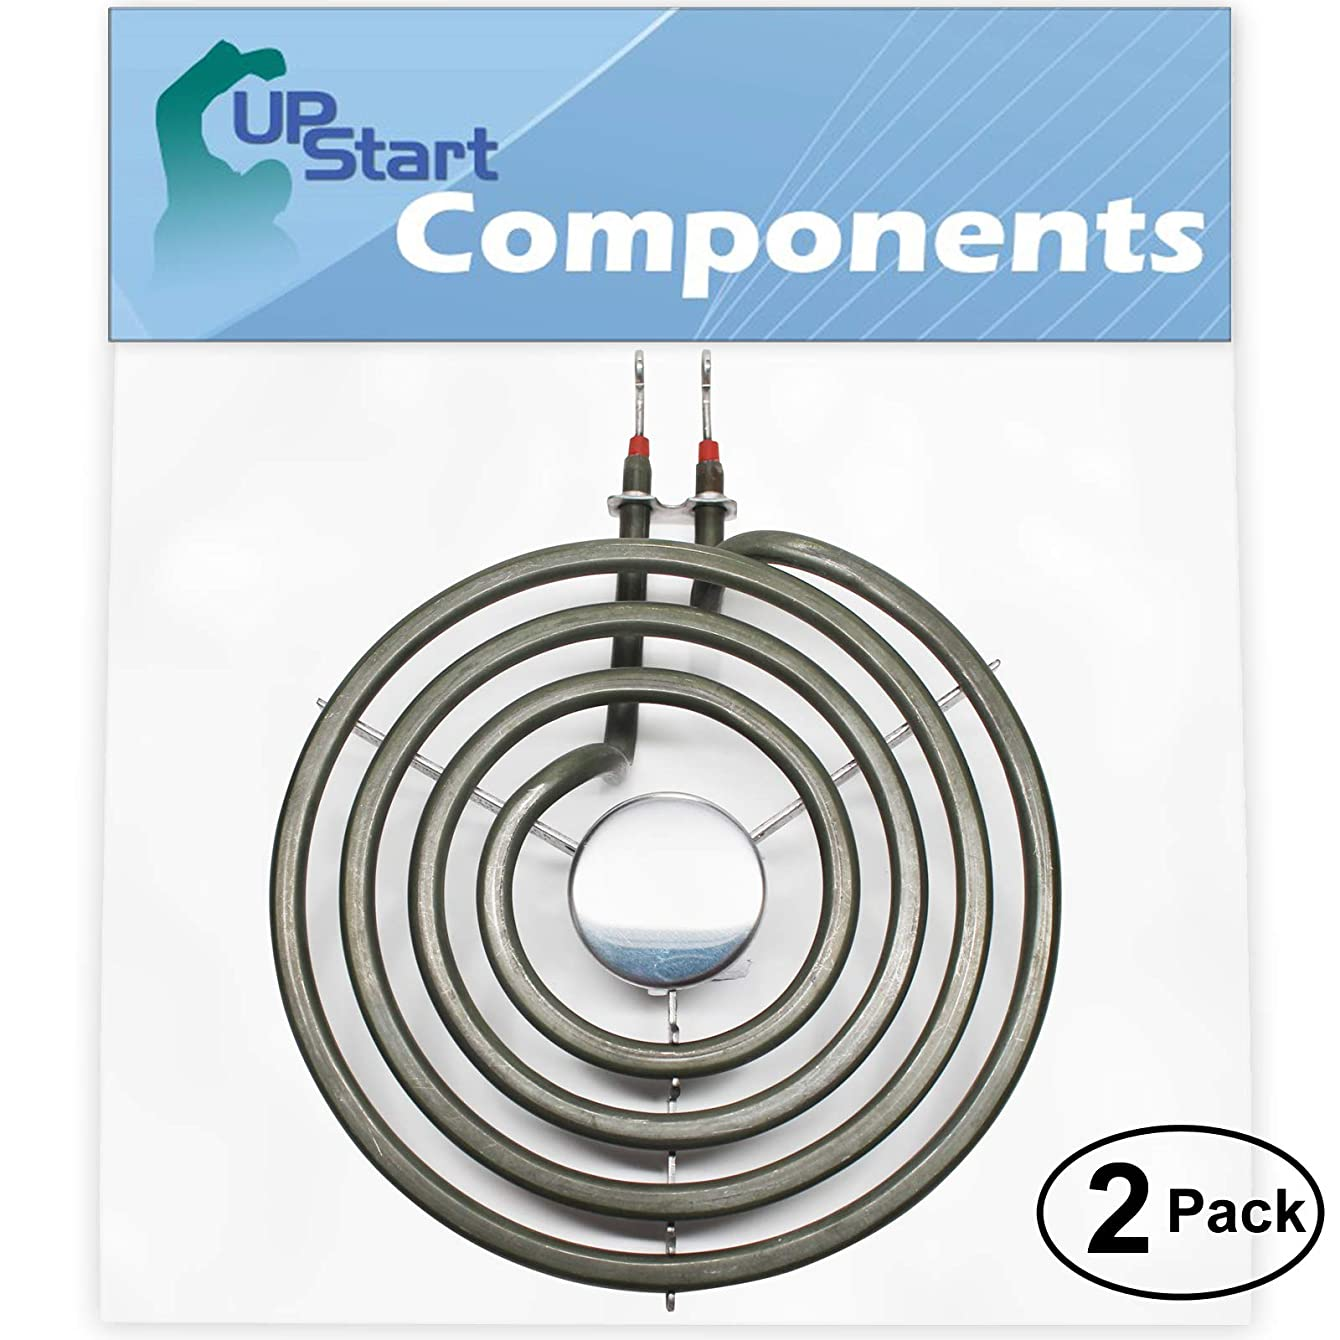 2-Pack Replacement Whirlpool RF385PXGQ1 6 inch 4 Turns Surface Burner Element - Compatible Whirlpool 660532 Heating Element for Range, Stove & Cooktop